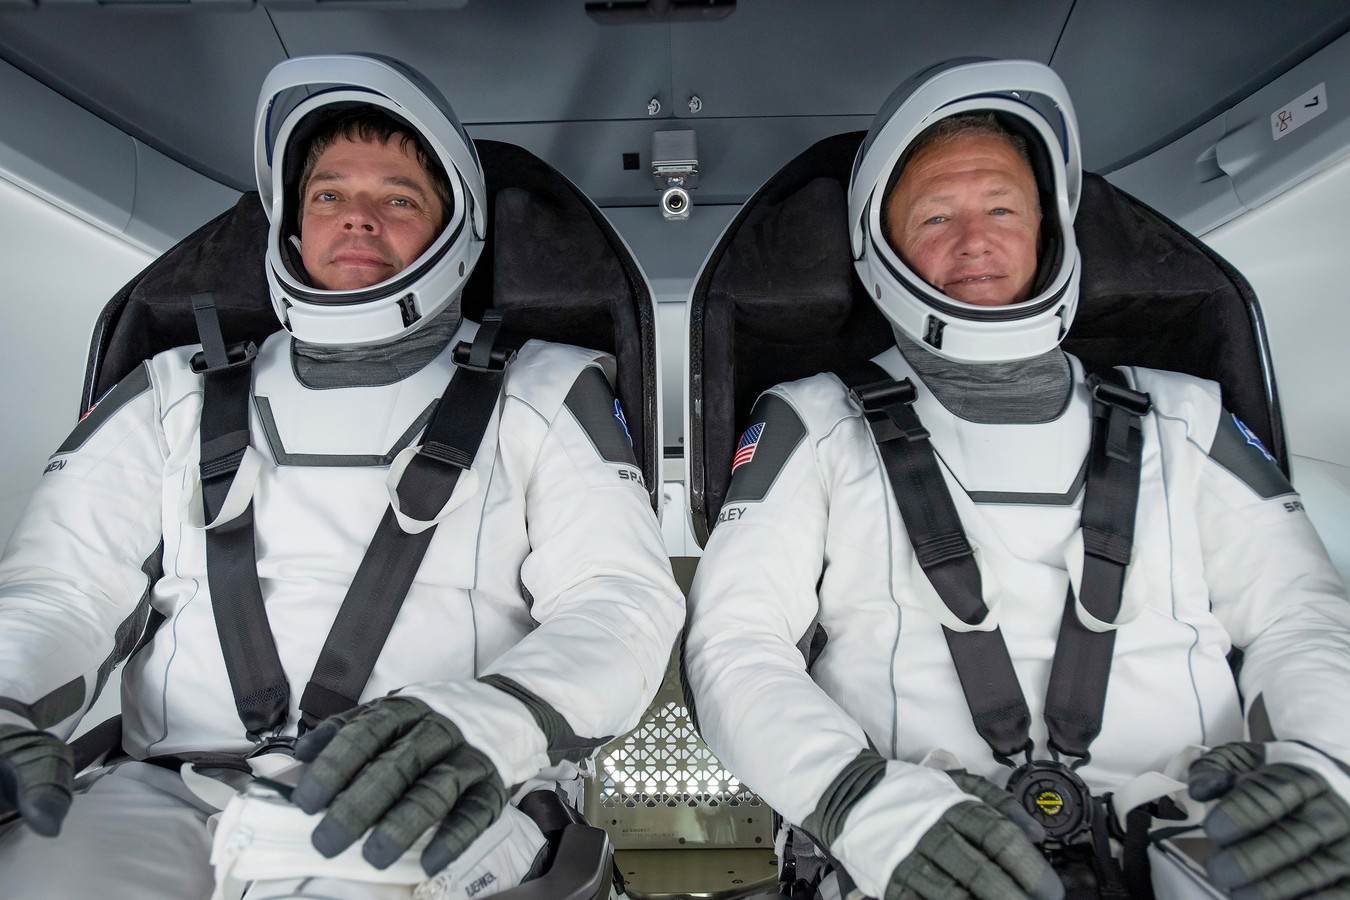 De astronauten Bob Behnken (links) and Douglas Hurley.